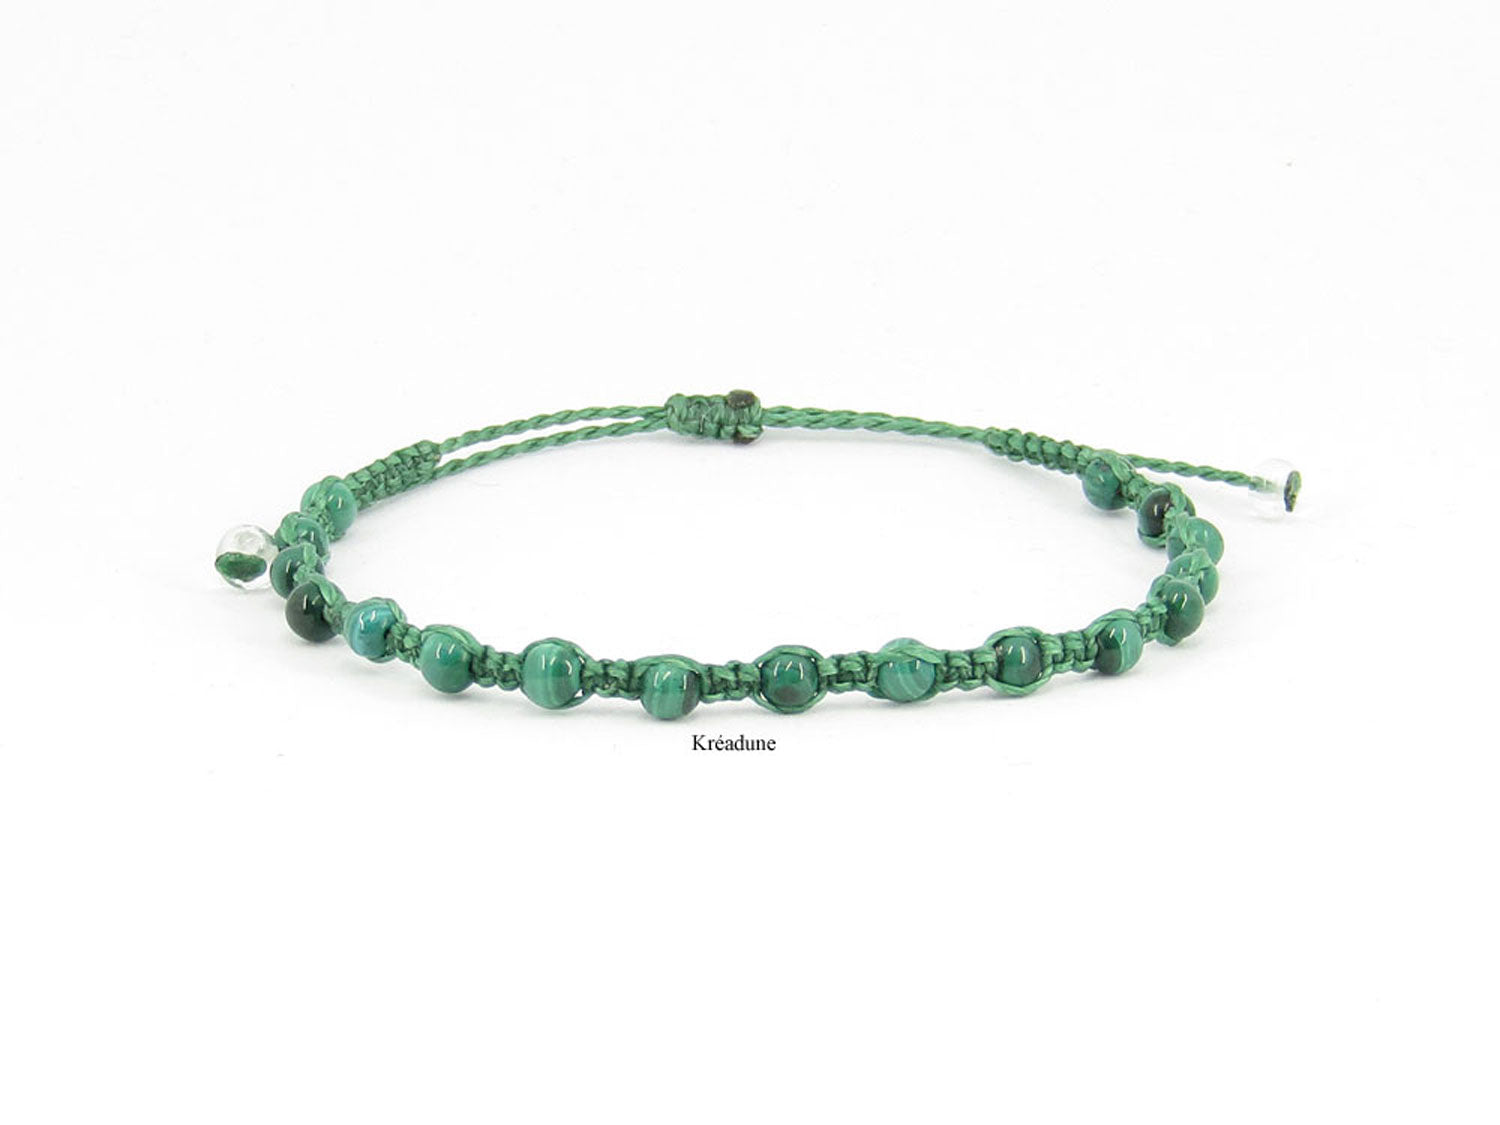 Bracelet tibétain malachite perles naturelles